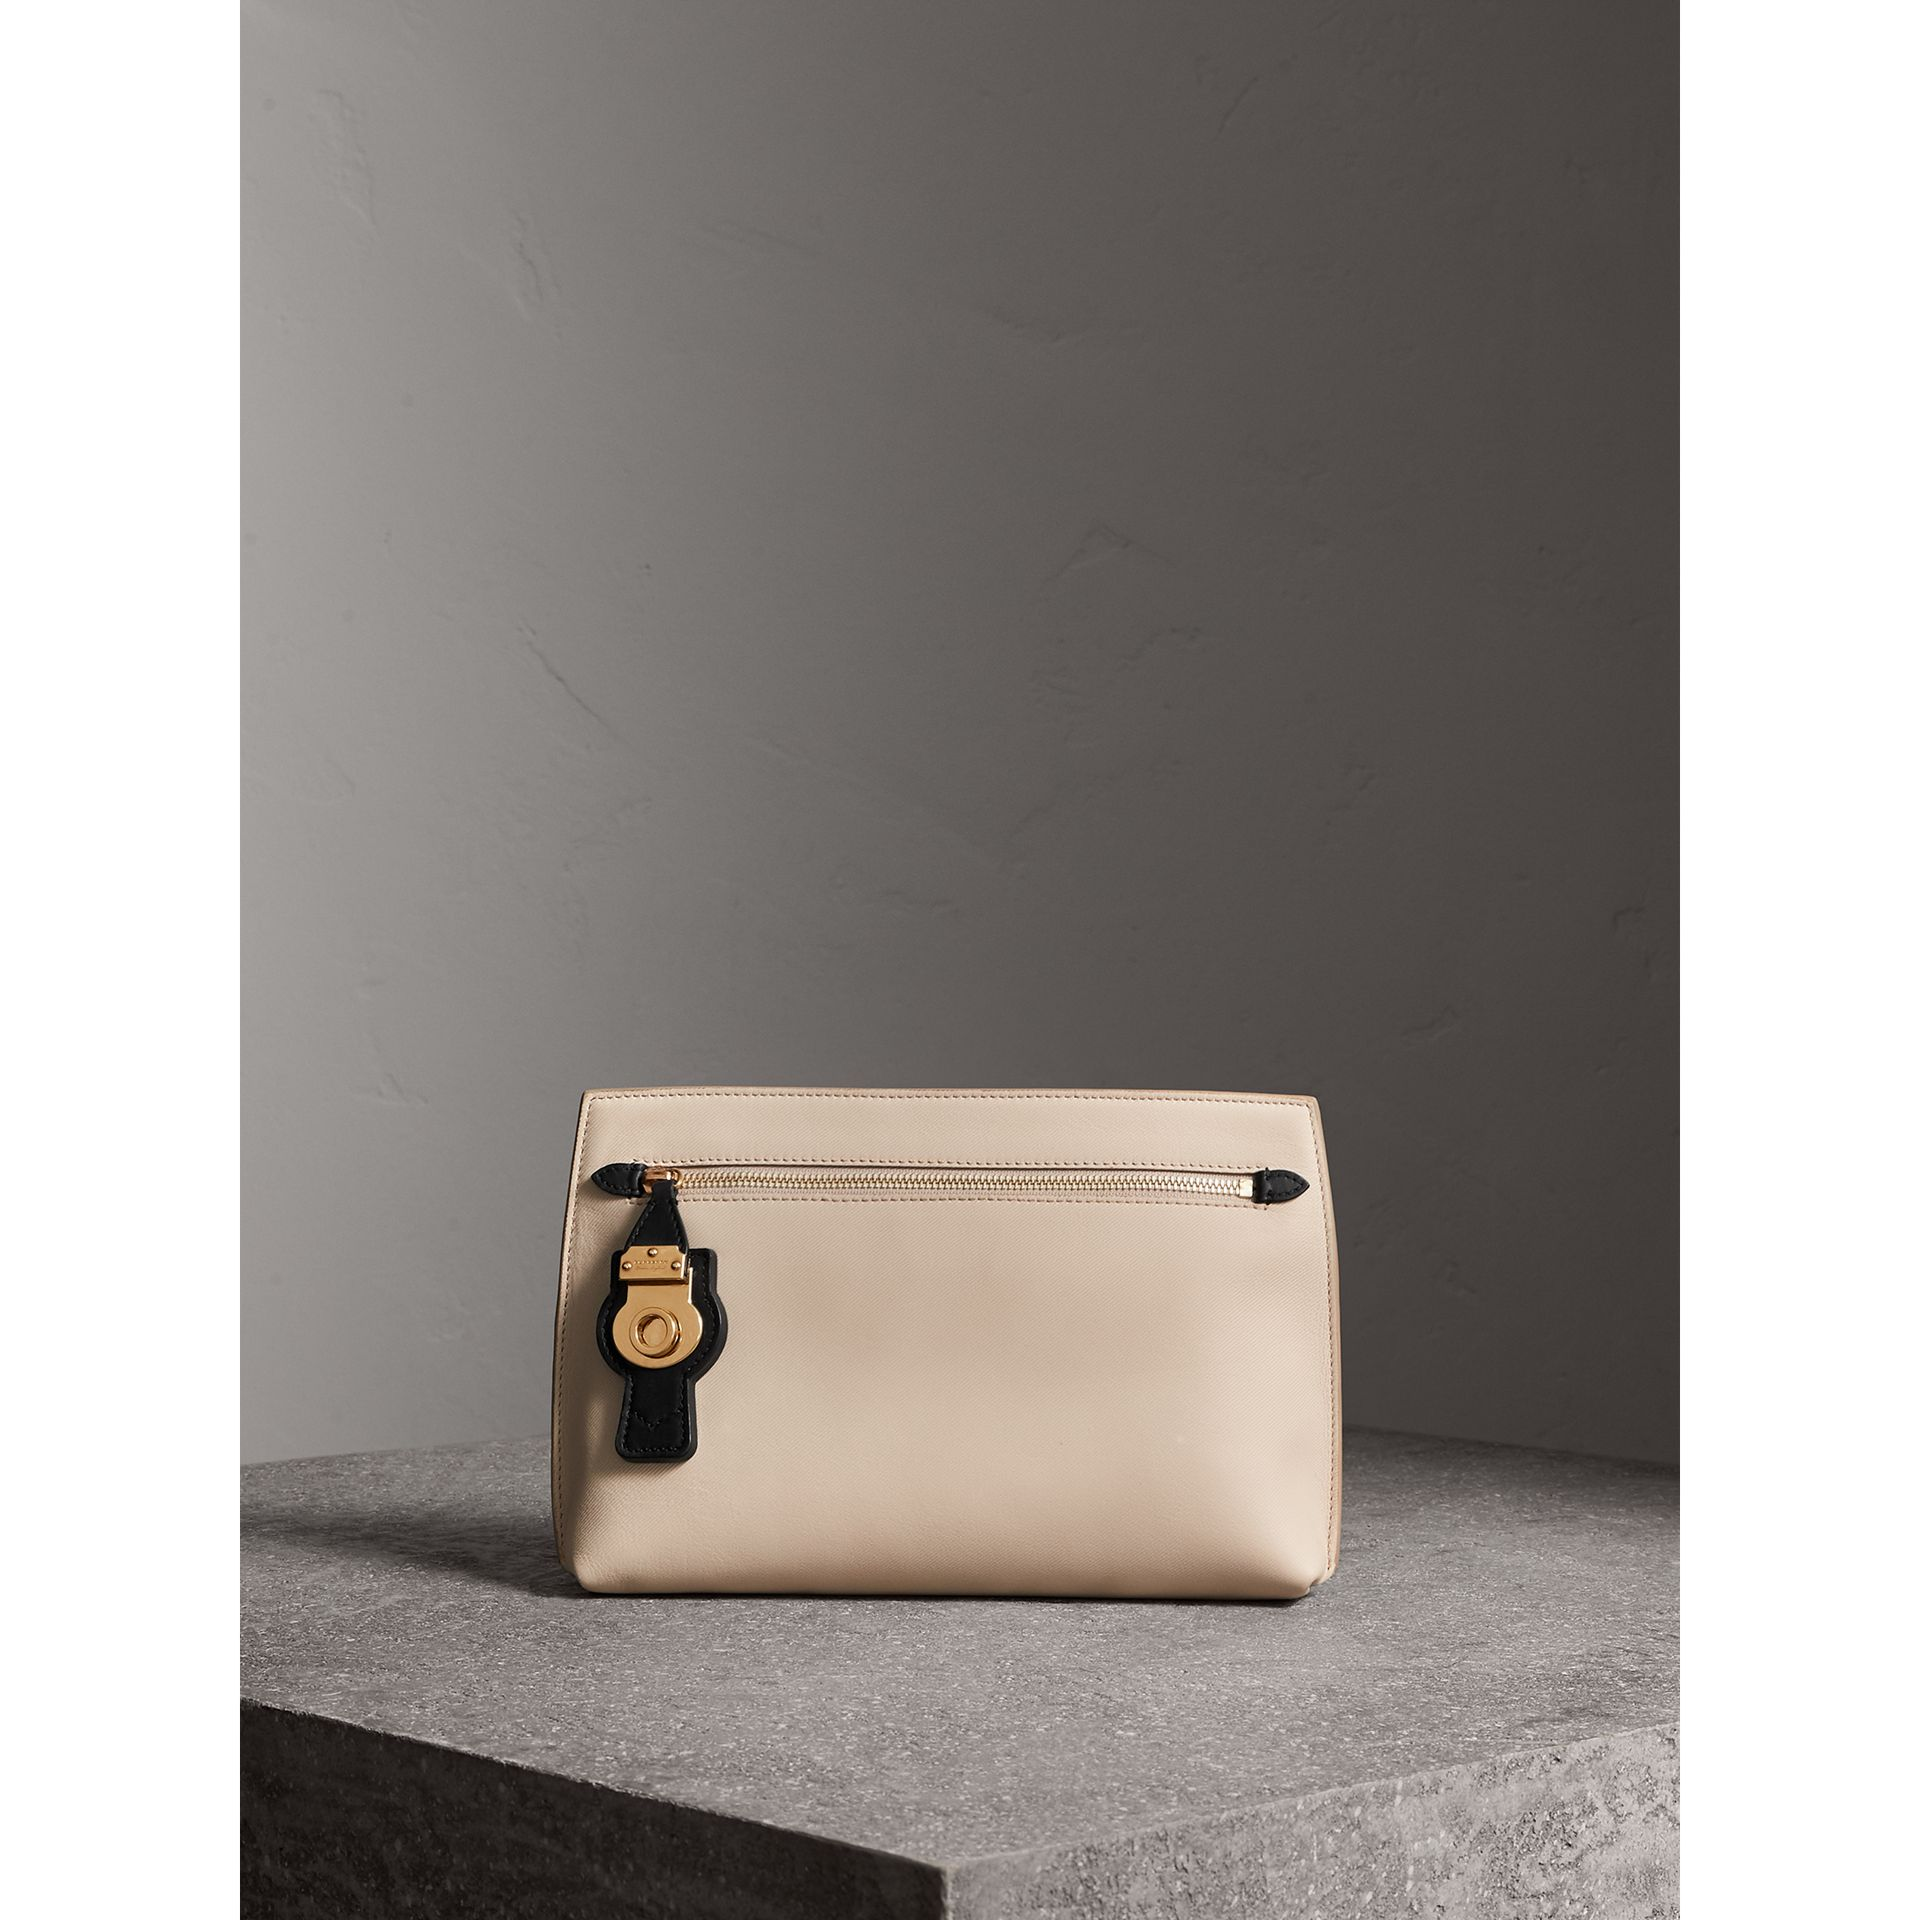 Two-tone Trench Leather Wristlet Pouch in Limestone/black - Women | Burberry Singapore - gallery image 1